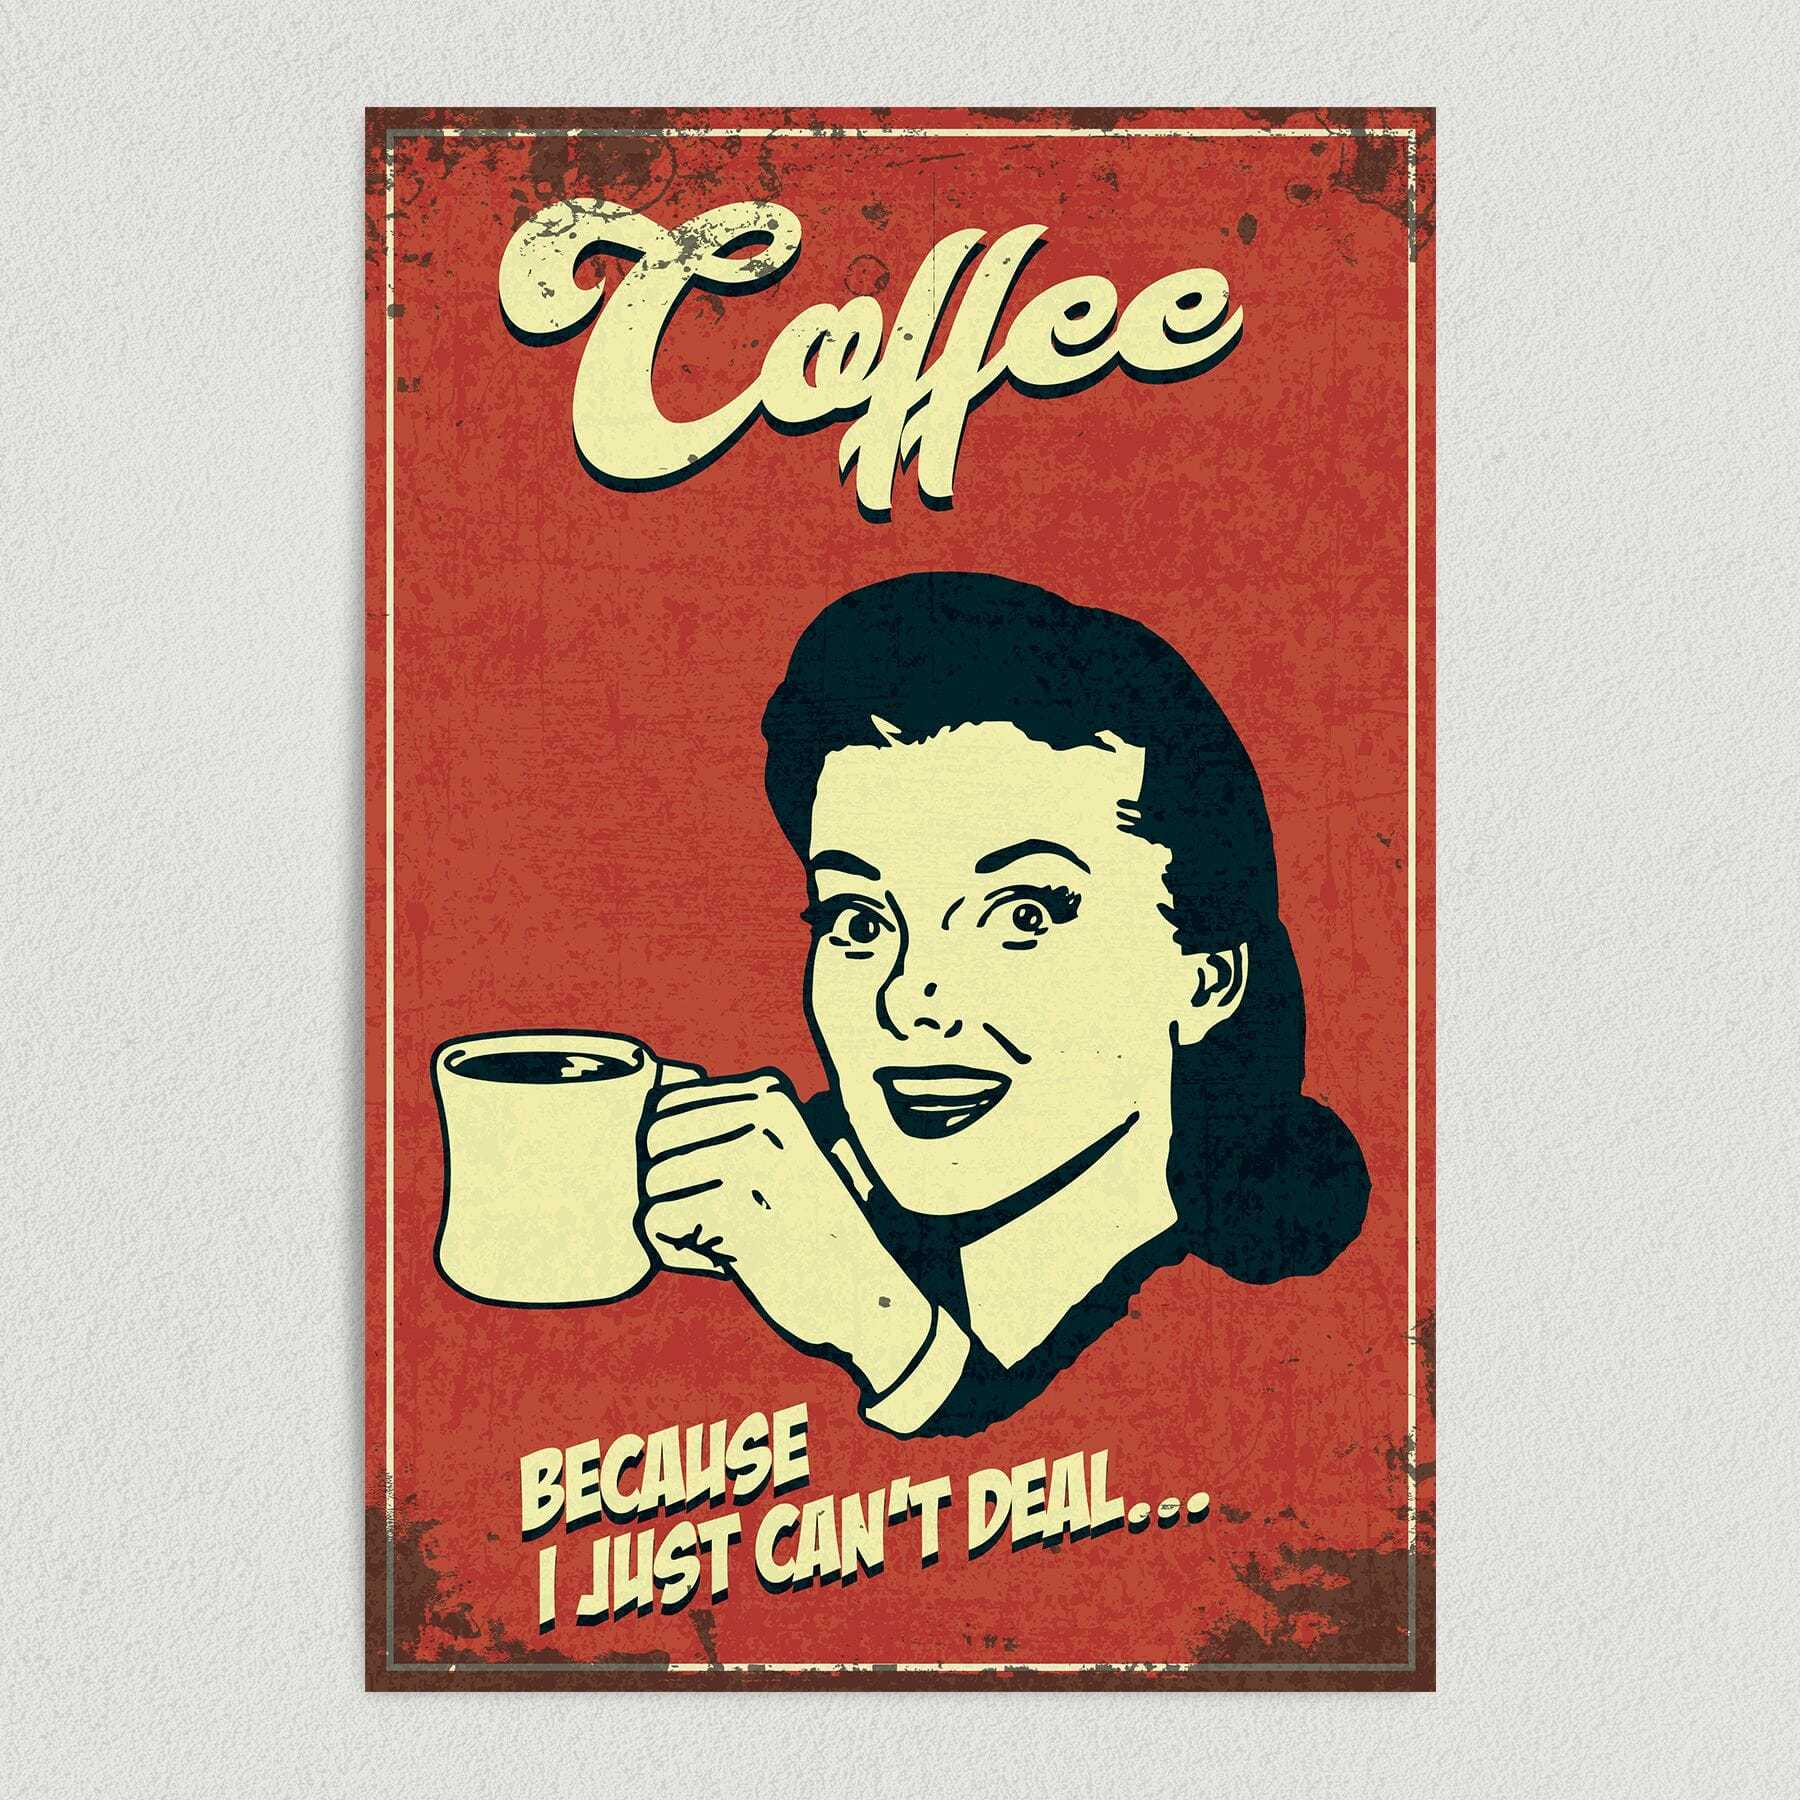 Coffee… Because I Just Can't Deal Art Print Poster 12″ x 18″ Wall Art V1025